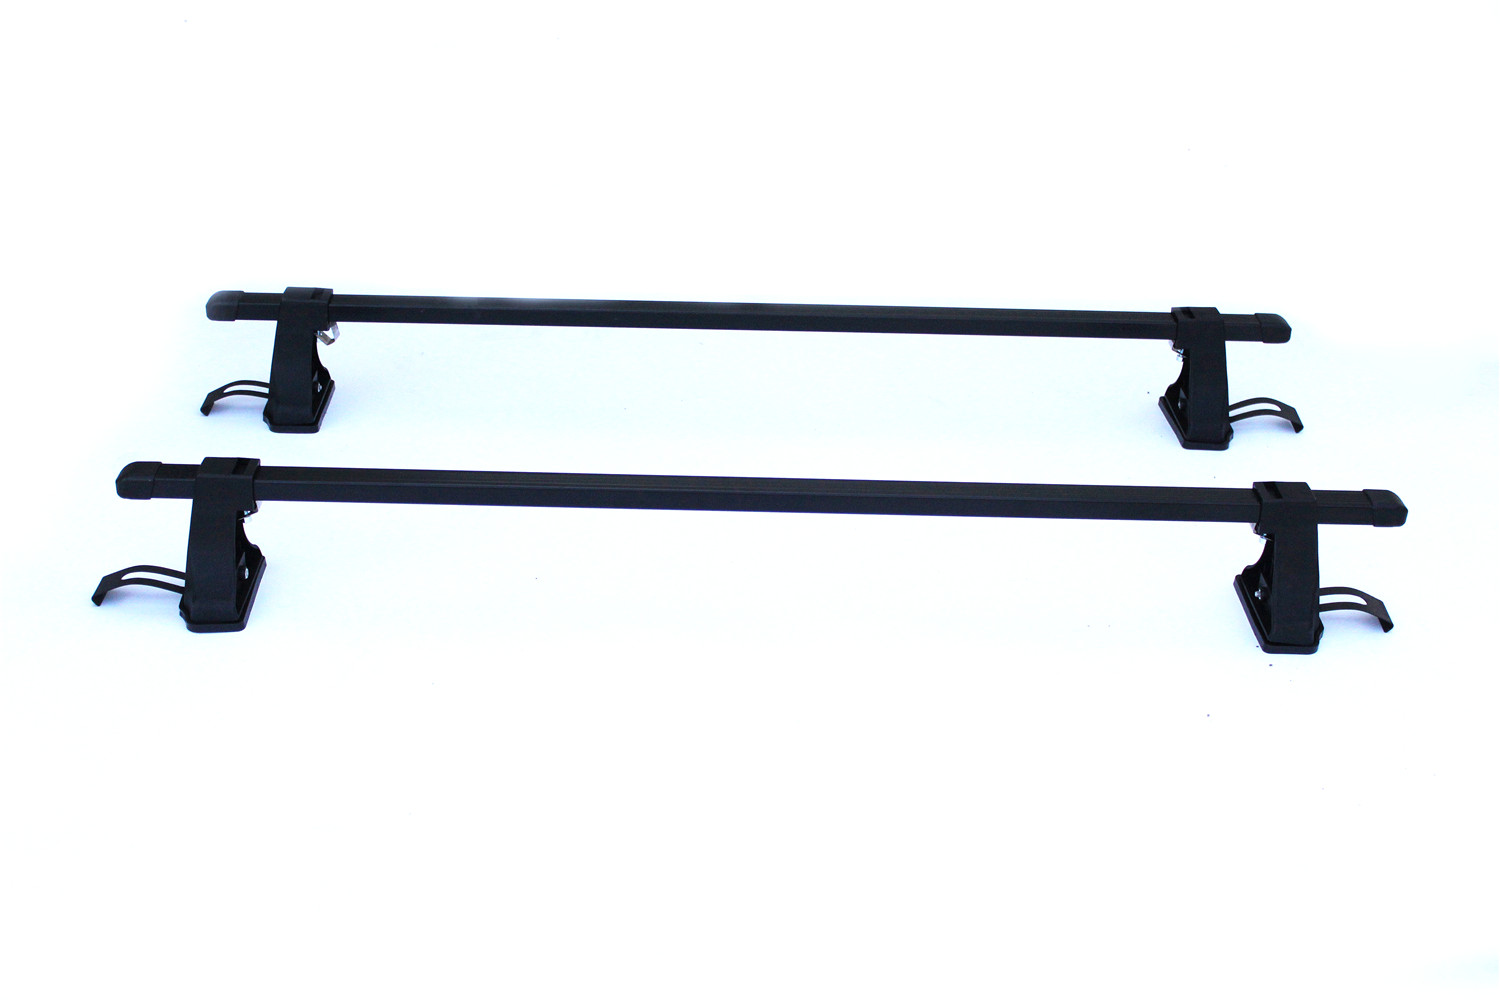 54 Quot Universal Top Roof Rack Cross Bars Luggage For 4 Door